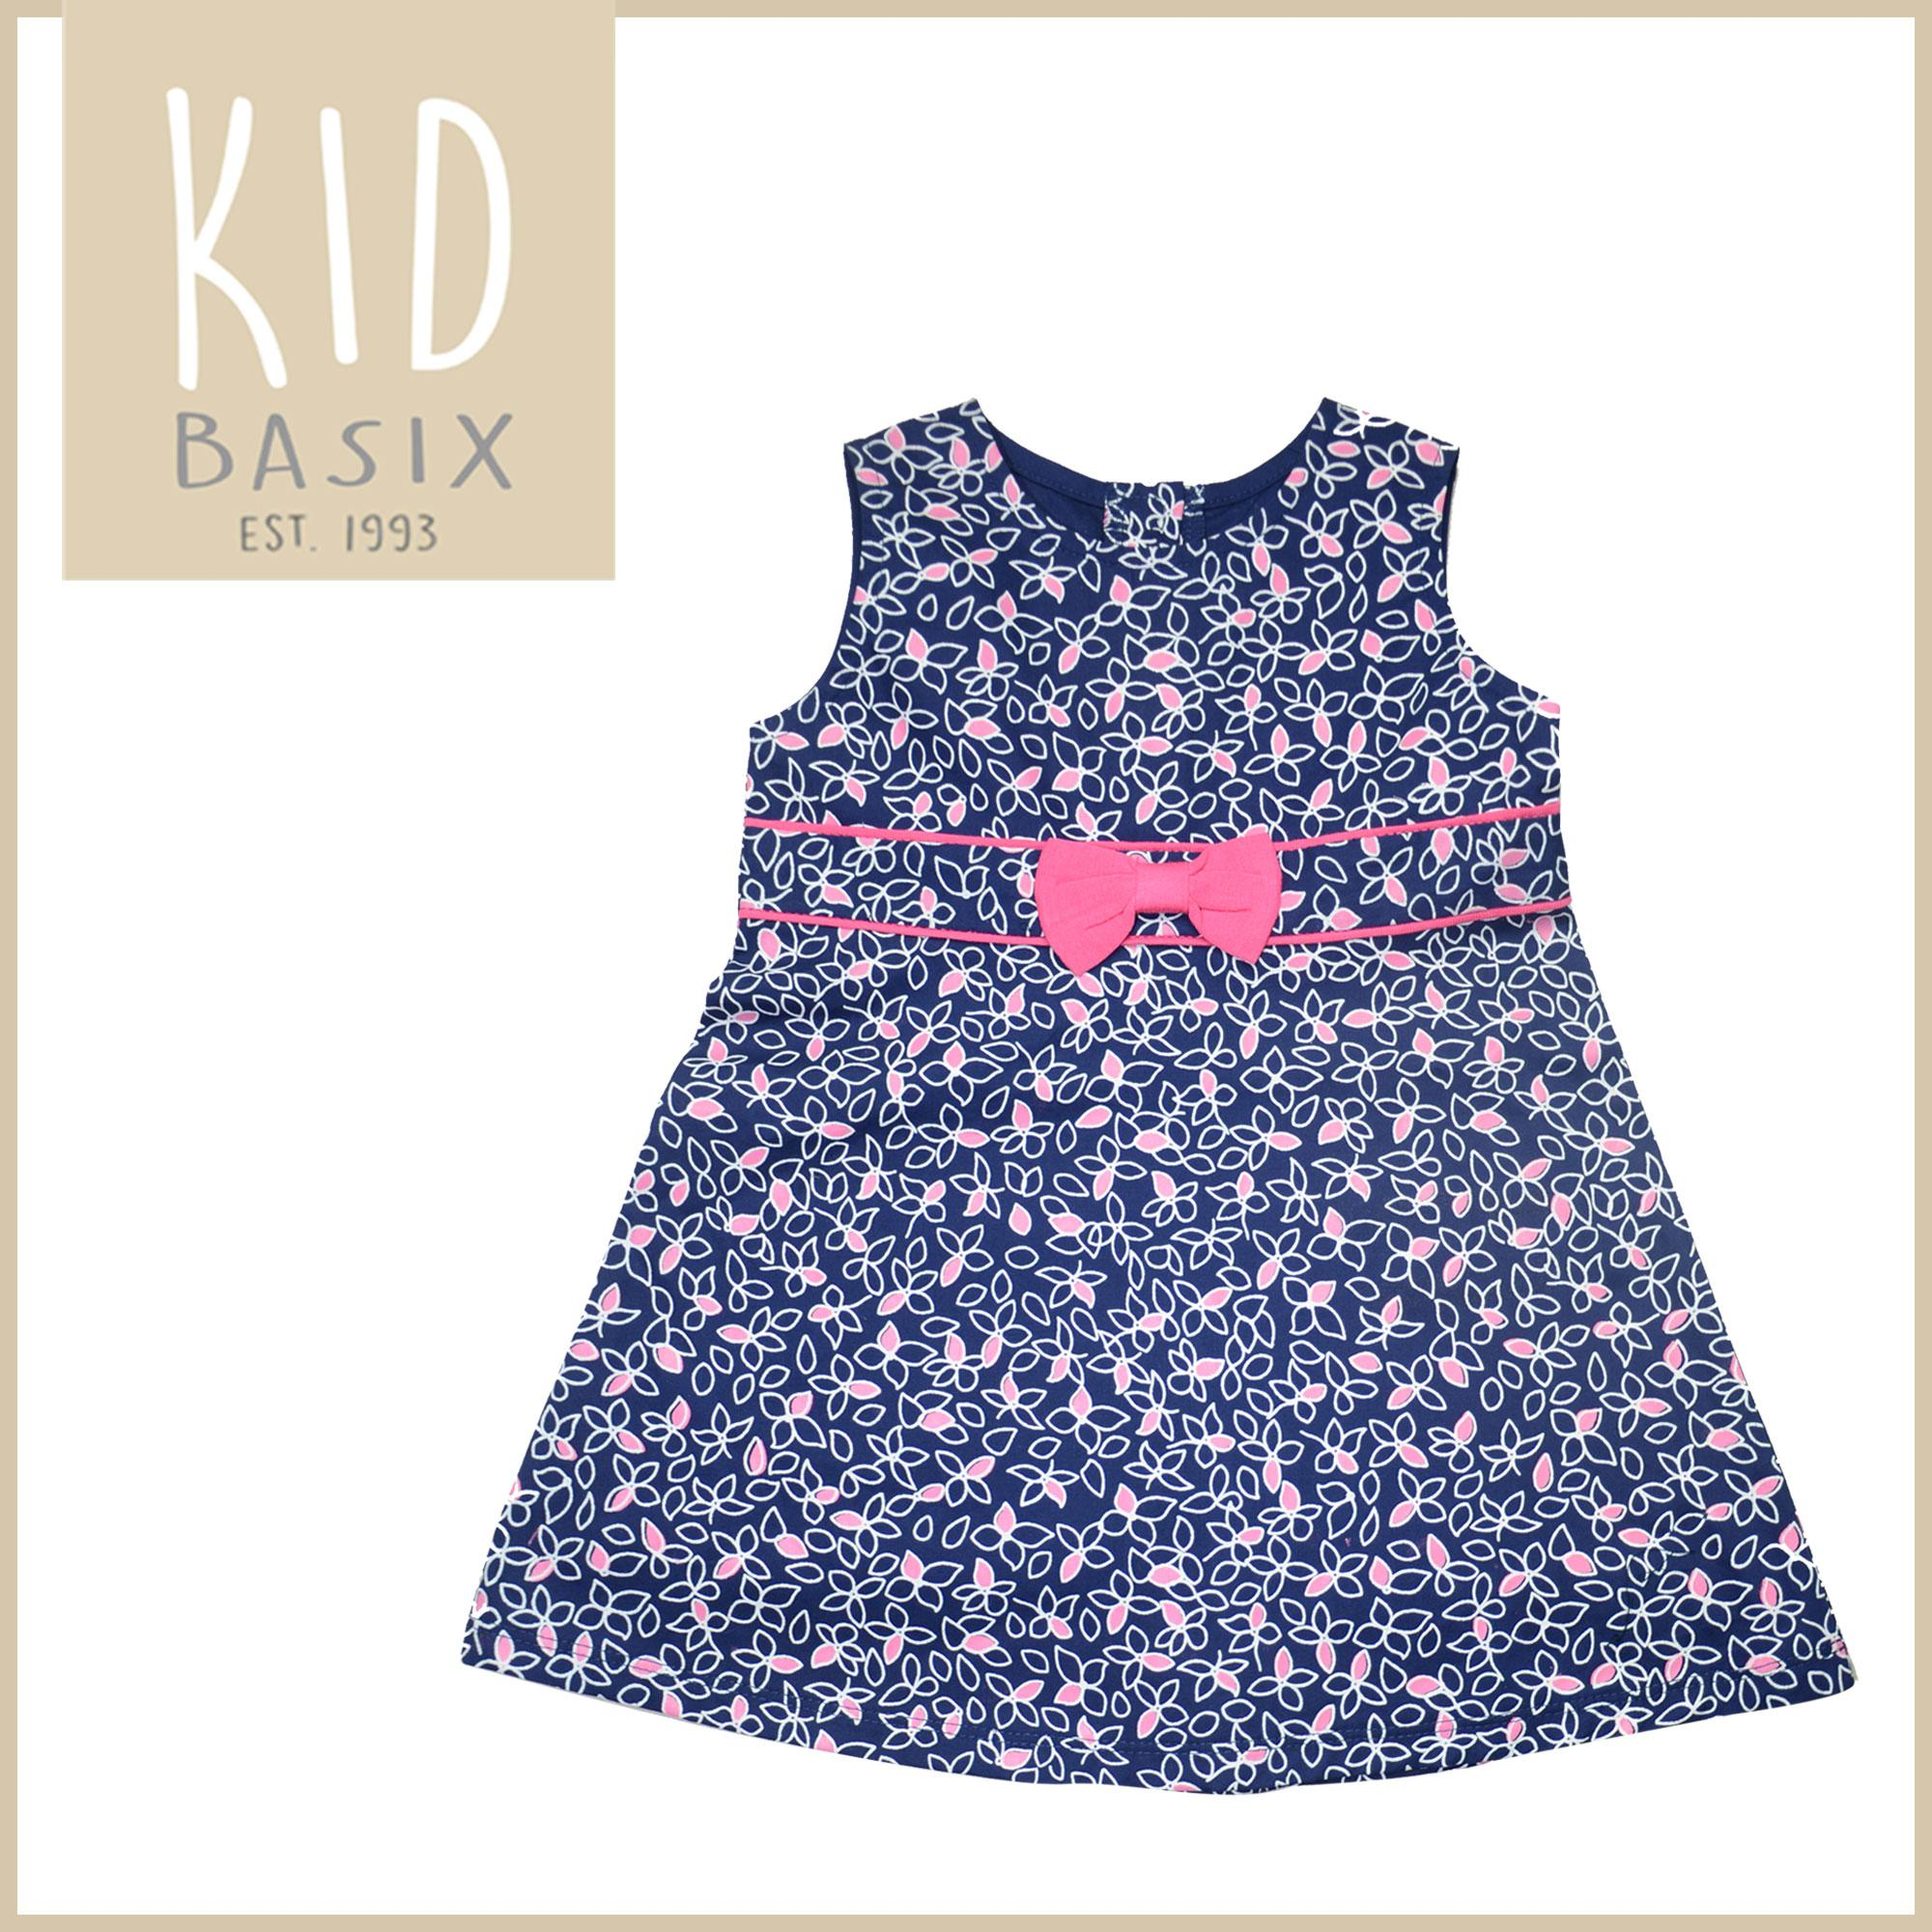 195773facb9eb Kid Basix Kids Dress for Girls White and Pink printed Petals with Pink  Ribbon (Code